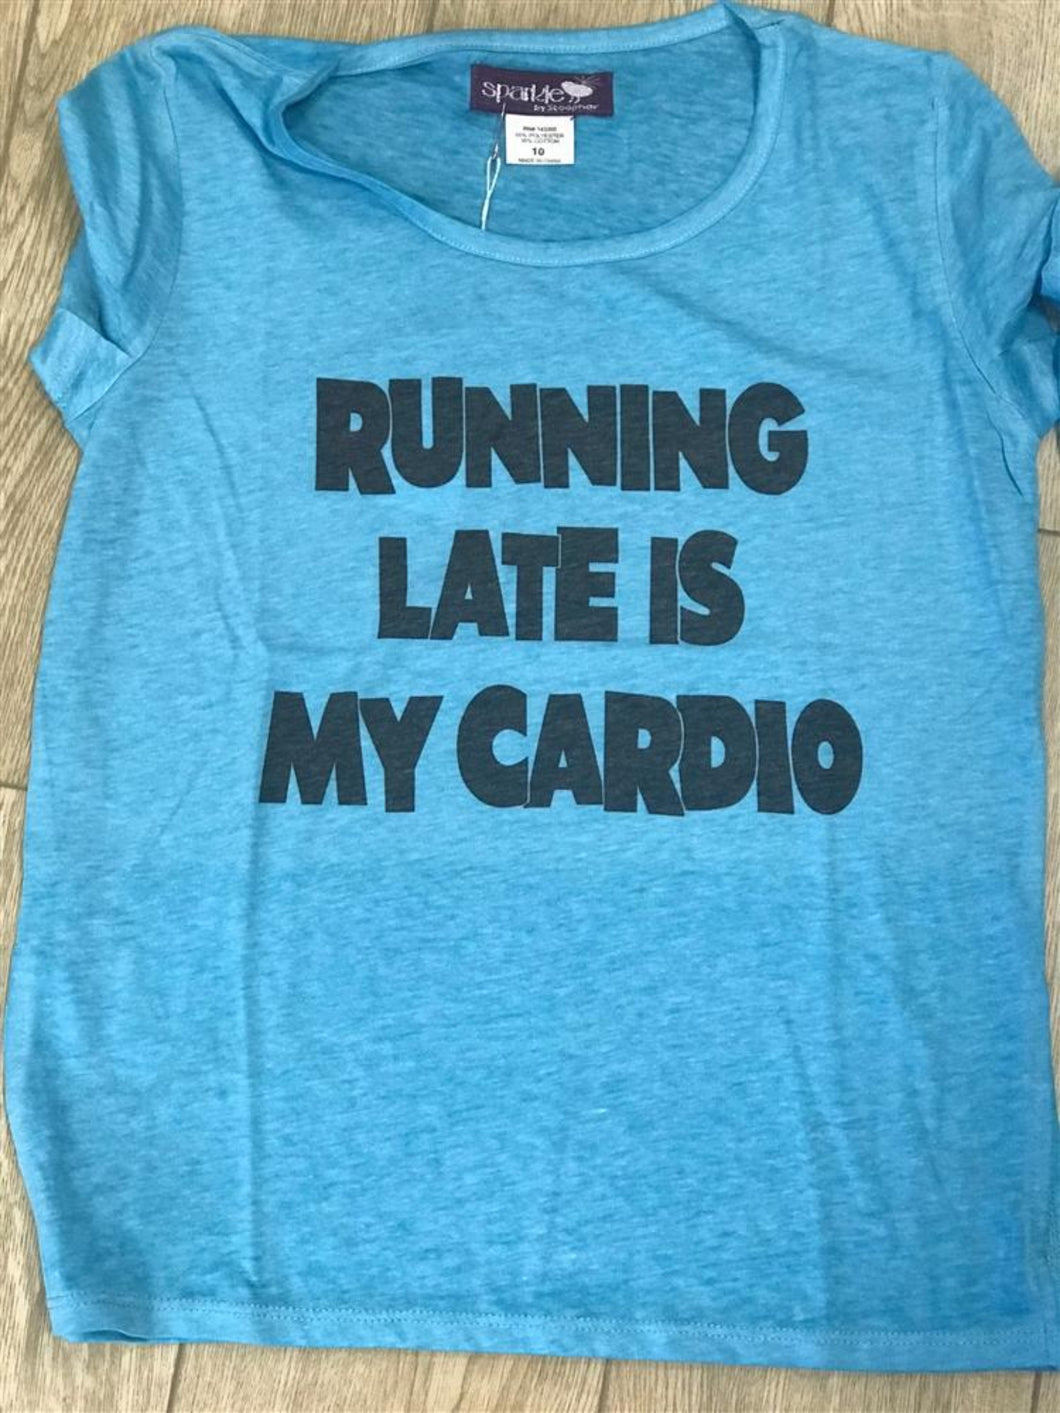 Running Late Is My Cardio t shirt - Honeypiekids.com